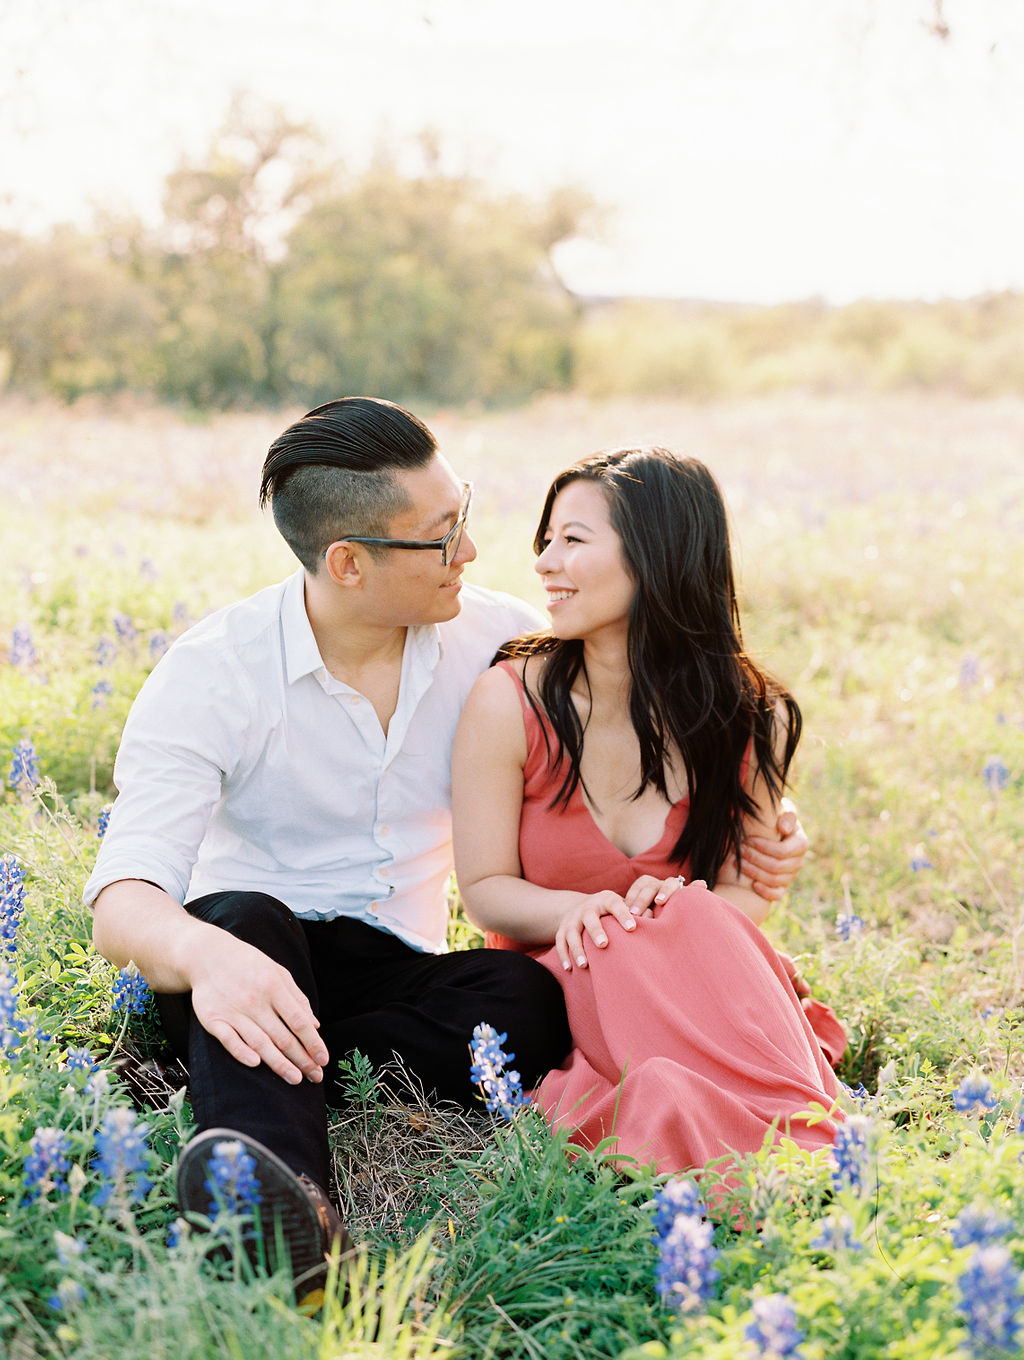 Austin-Film-Wedding-Photographer-Engagement-Session-Fun-adventure-outdoor-fine-art-8.jpg